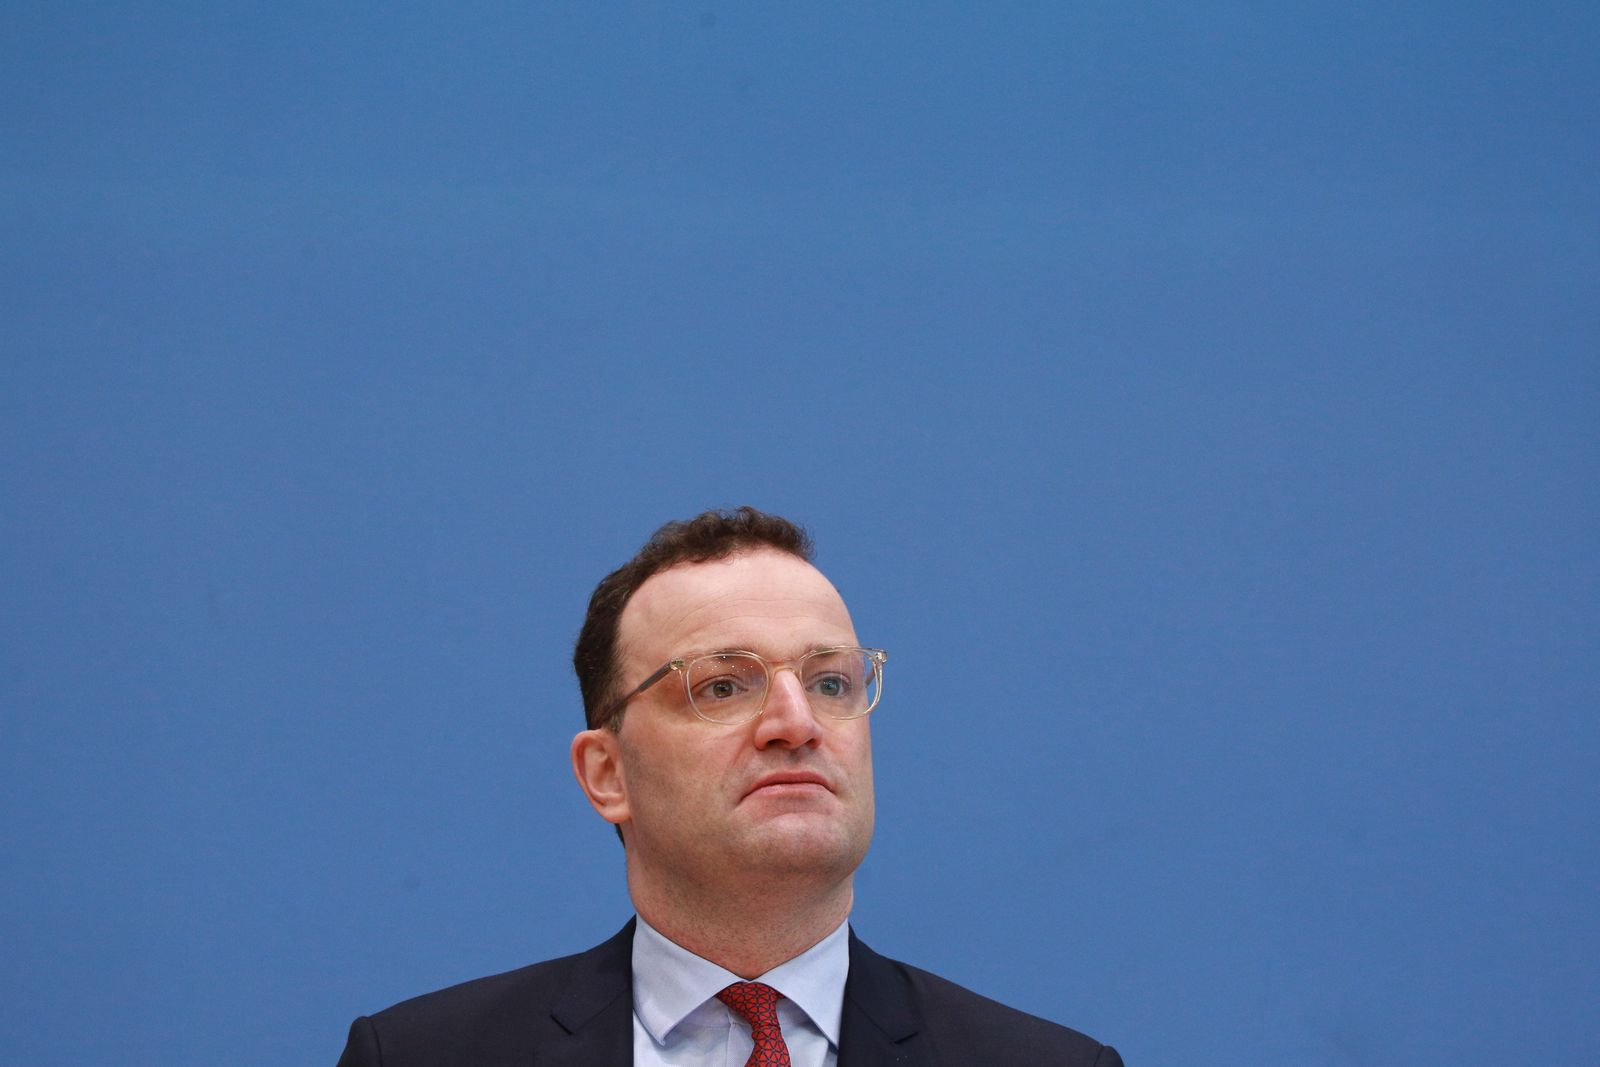 German Federal Government press conference on Covid